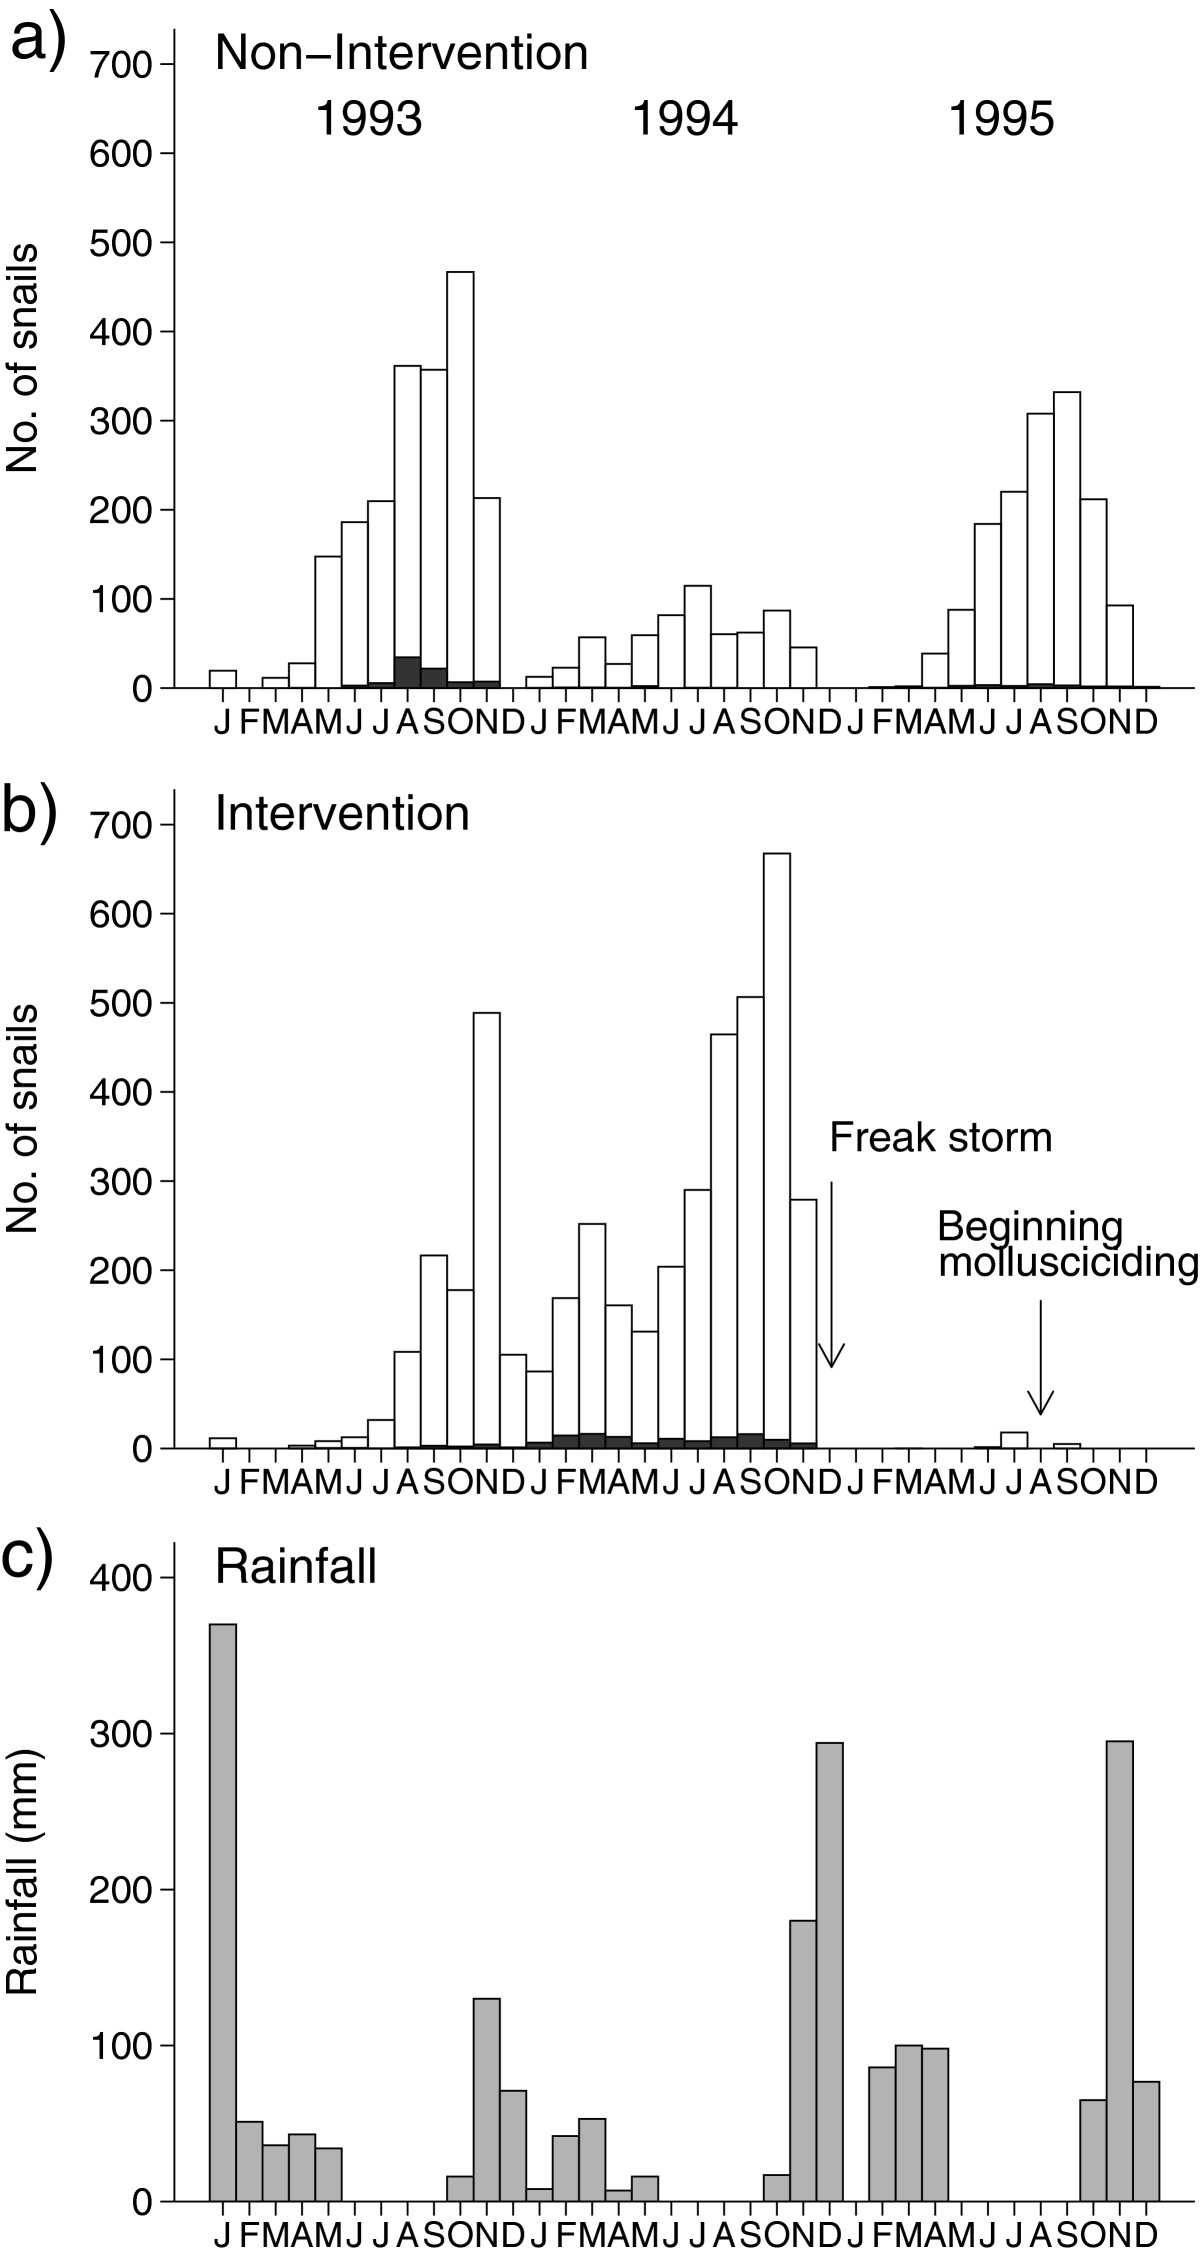 http://static-content.springer.com/image/art%3A10.1186%2F1756-3305-6-107/MediaObjects/13071_2012_Article_919_Fig2_HTML.jpg